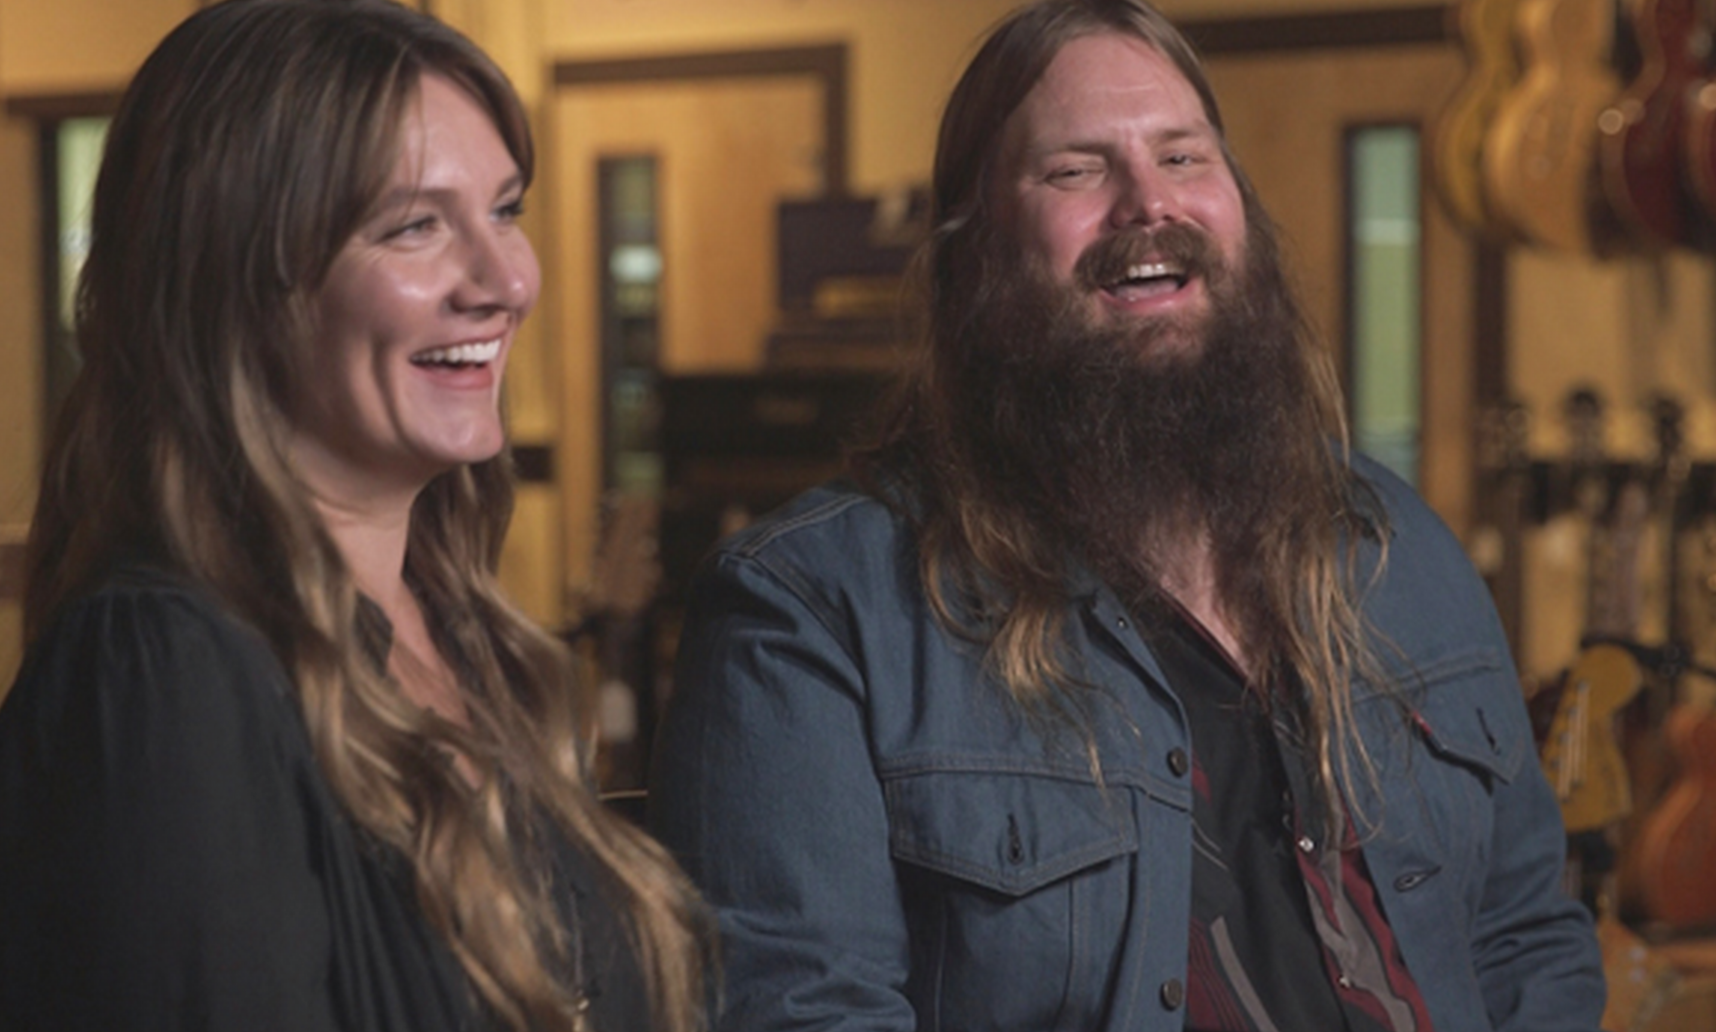 Chris Stapleton: A blazing star